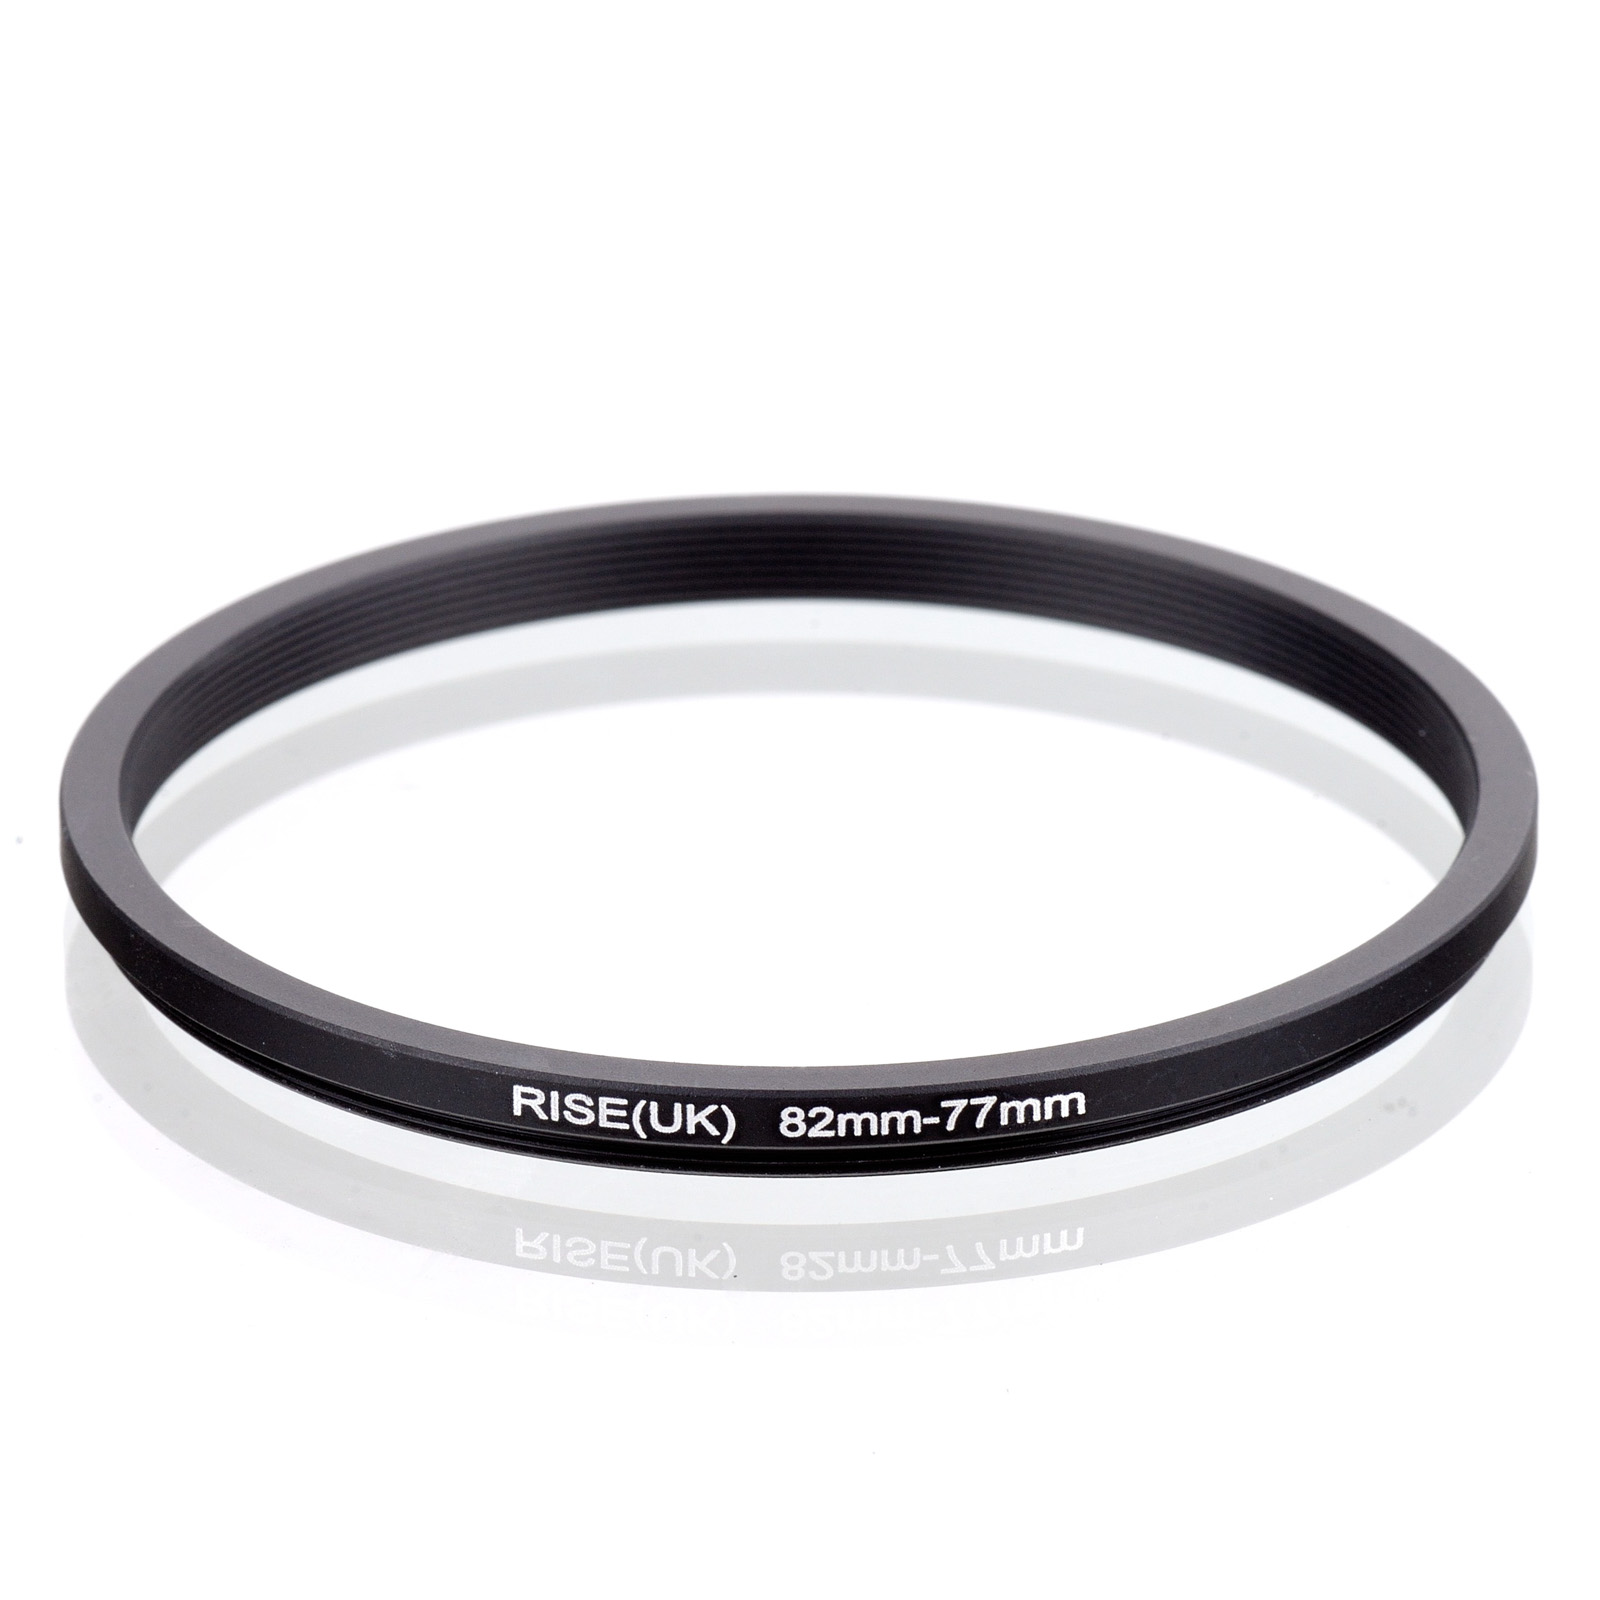 RISE(UK) 82mm-77mm 82-77 Mm 82 To 77 Step Down Filter Ring Adapter Black